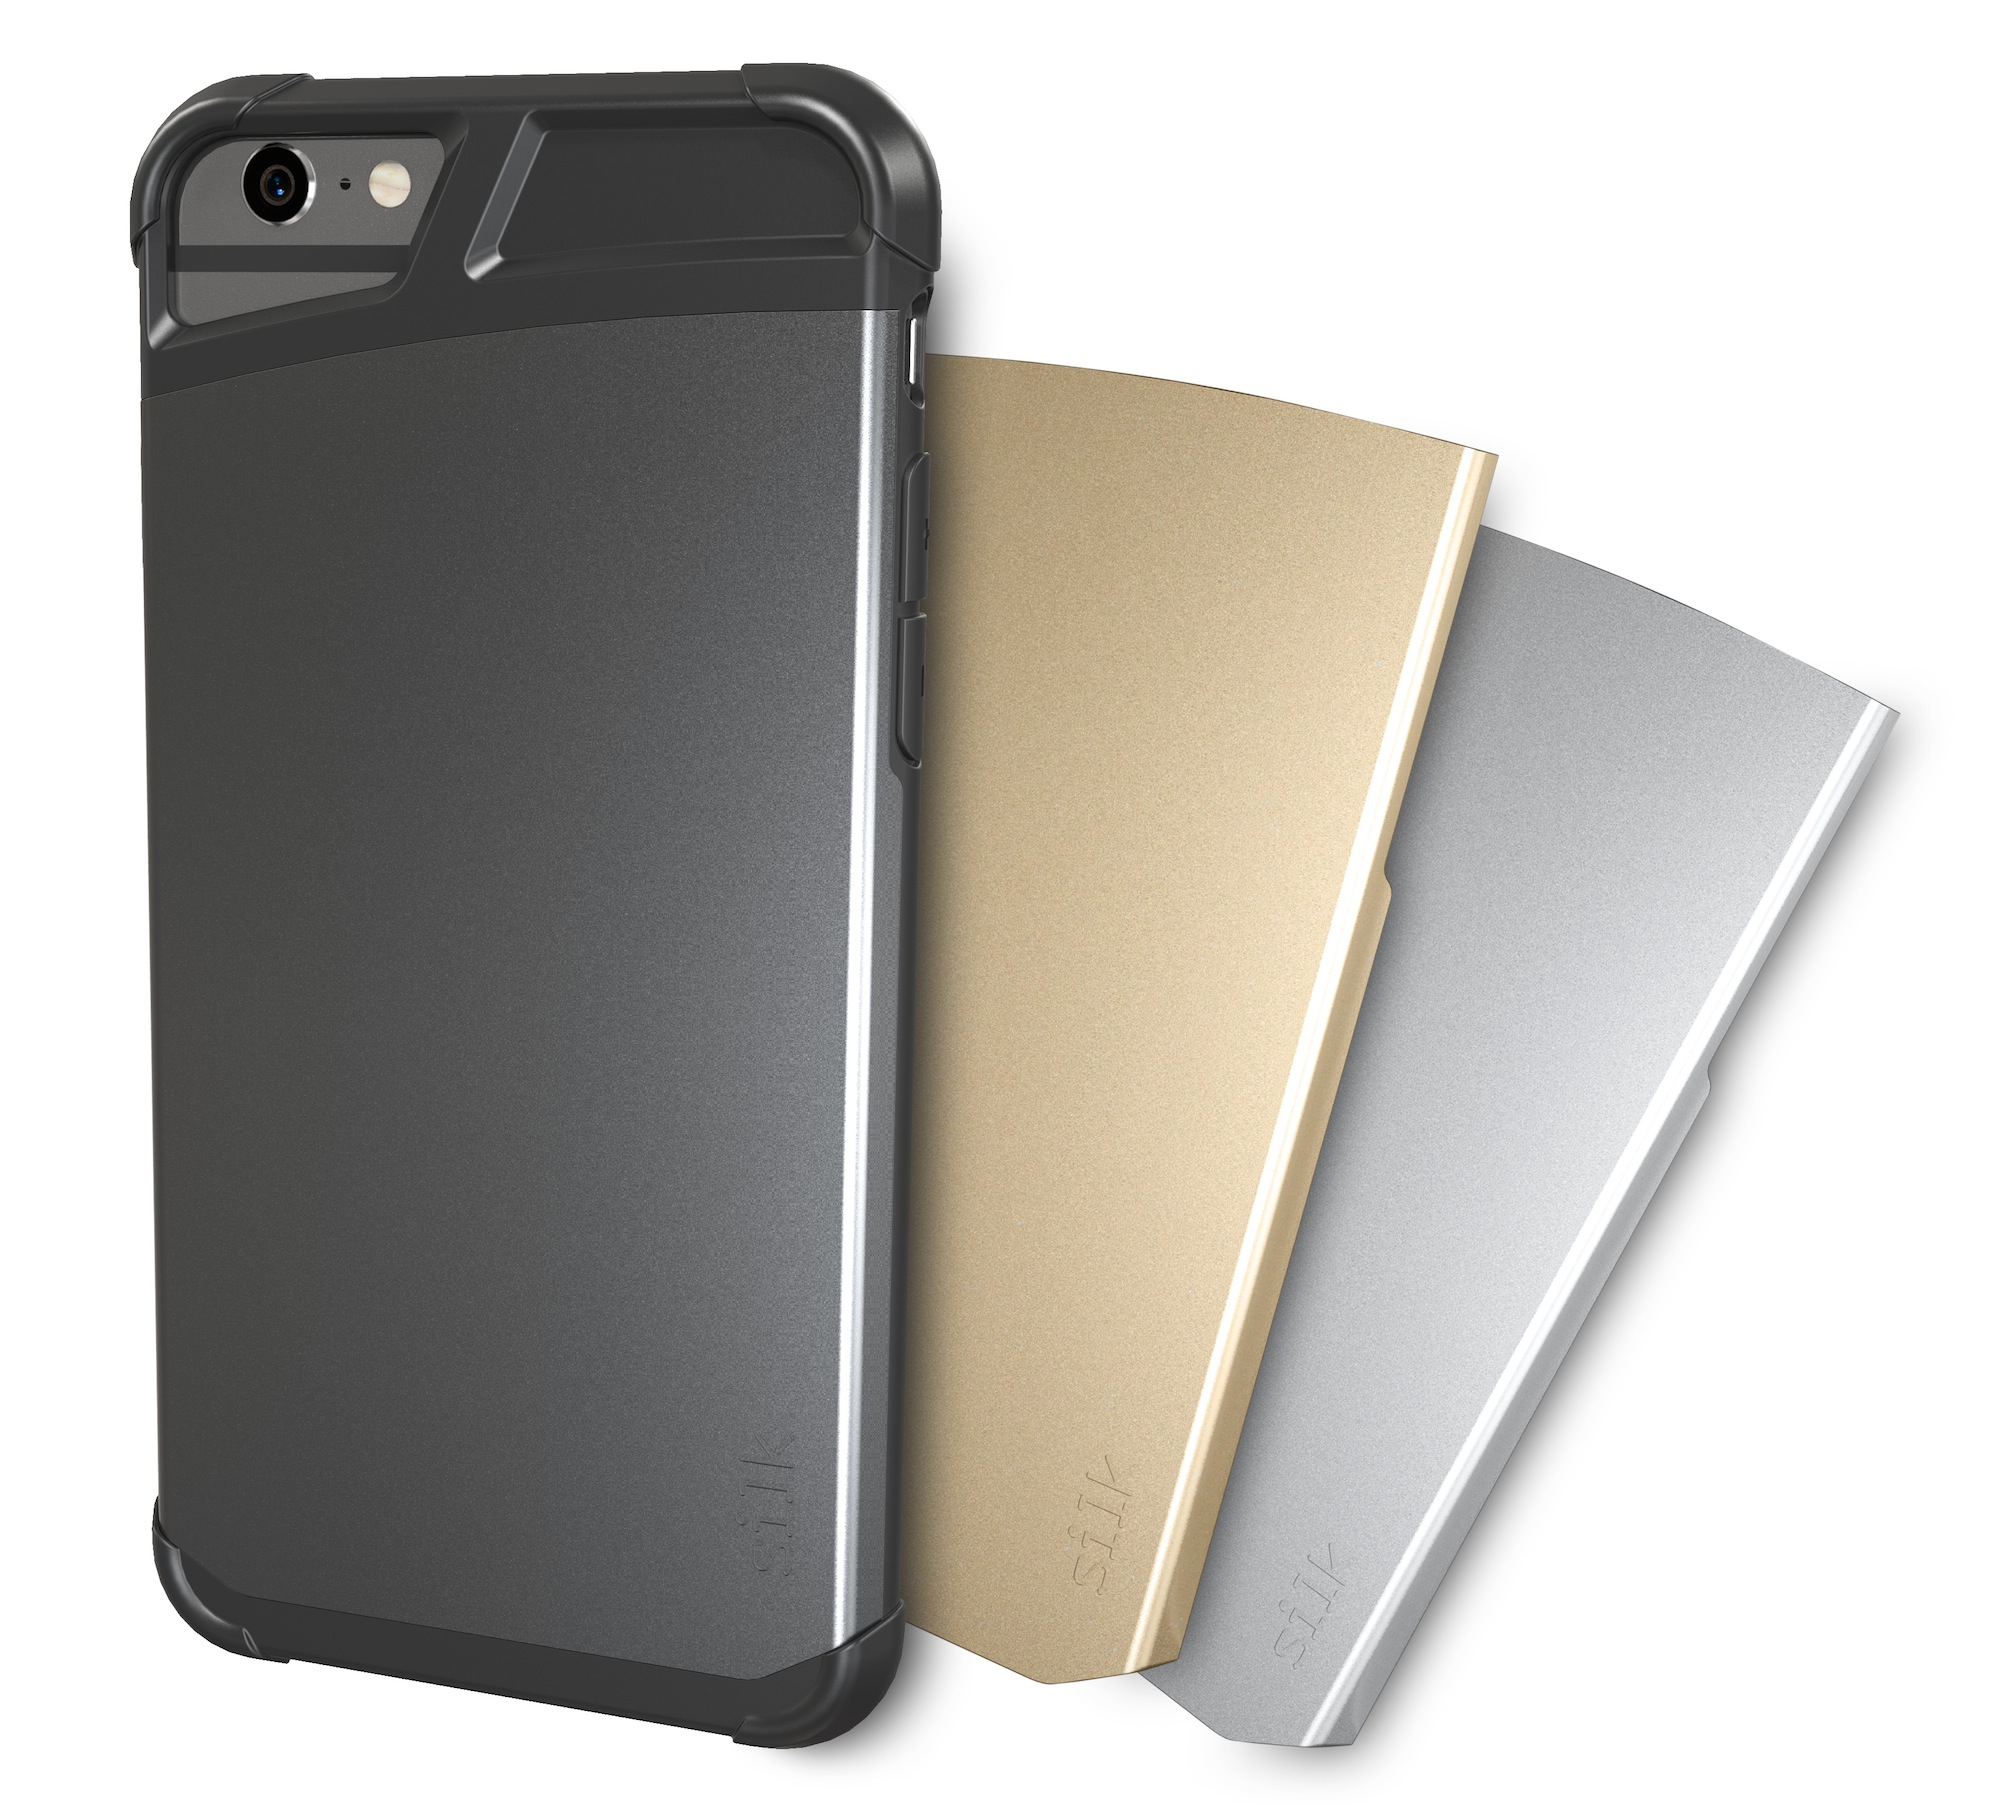 Silk Innovation Stealth Armor Tough Case